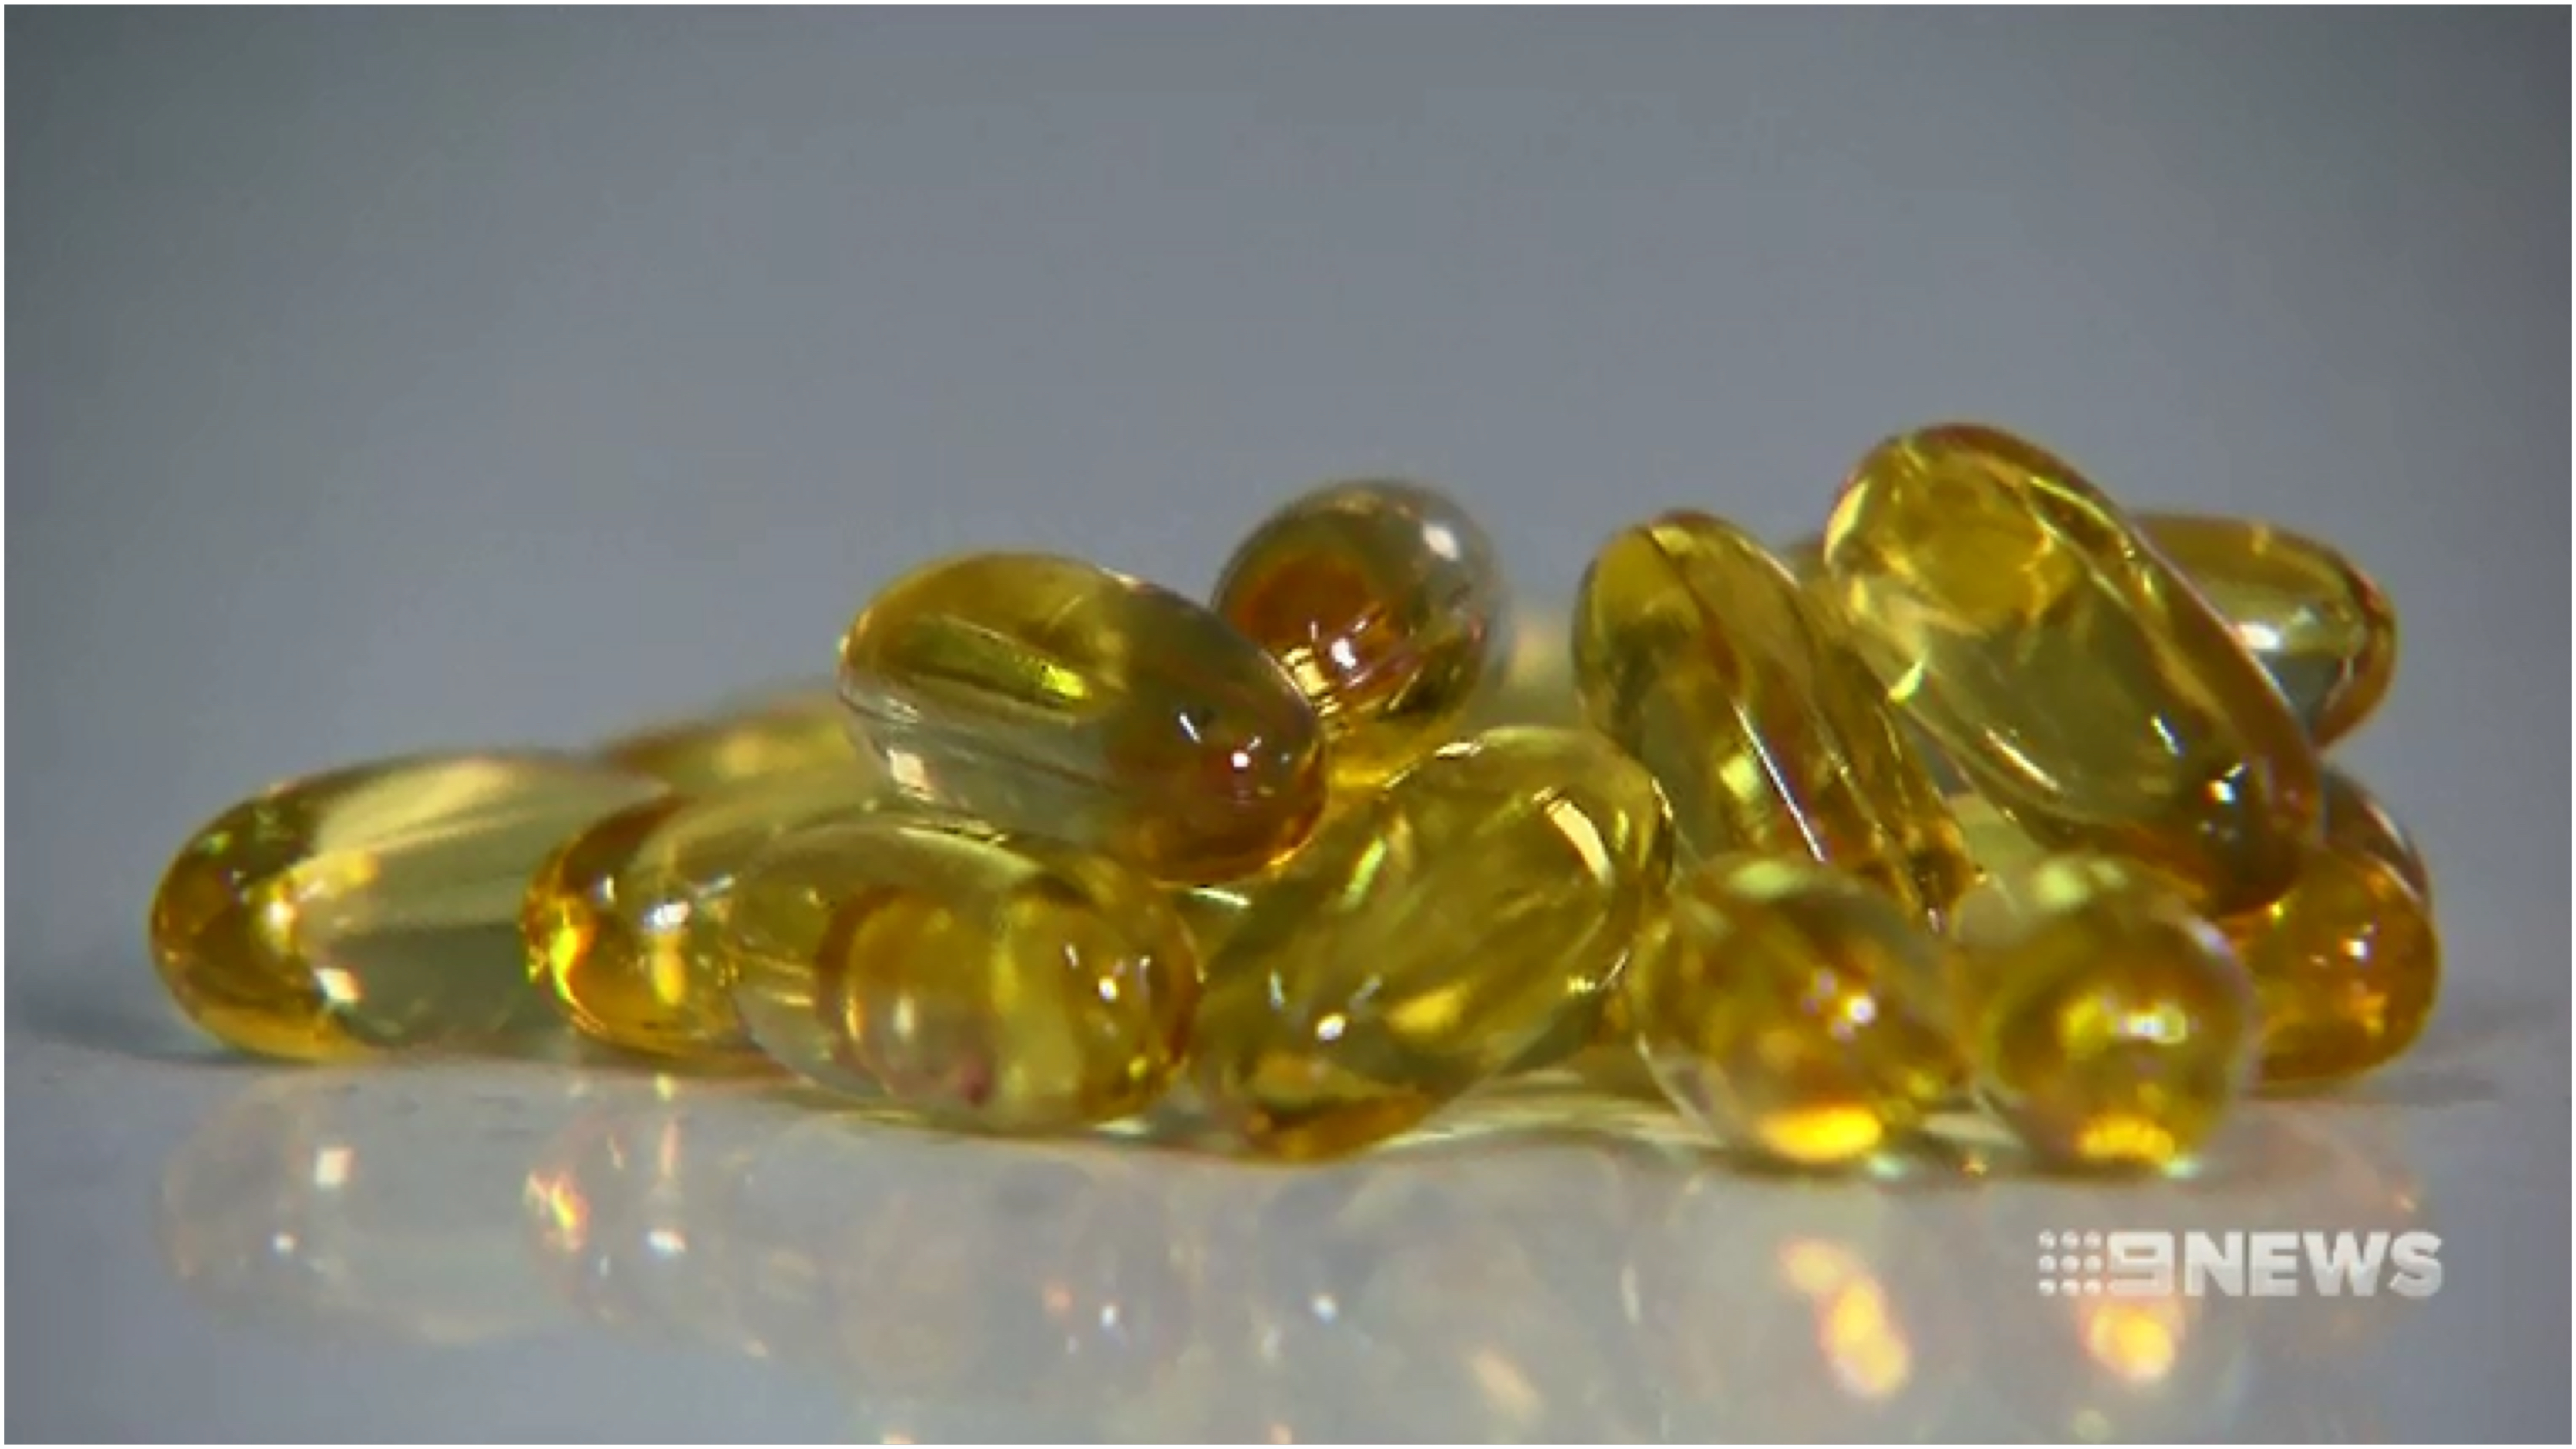 Vitamin E could help recovery after heart attack